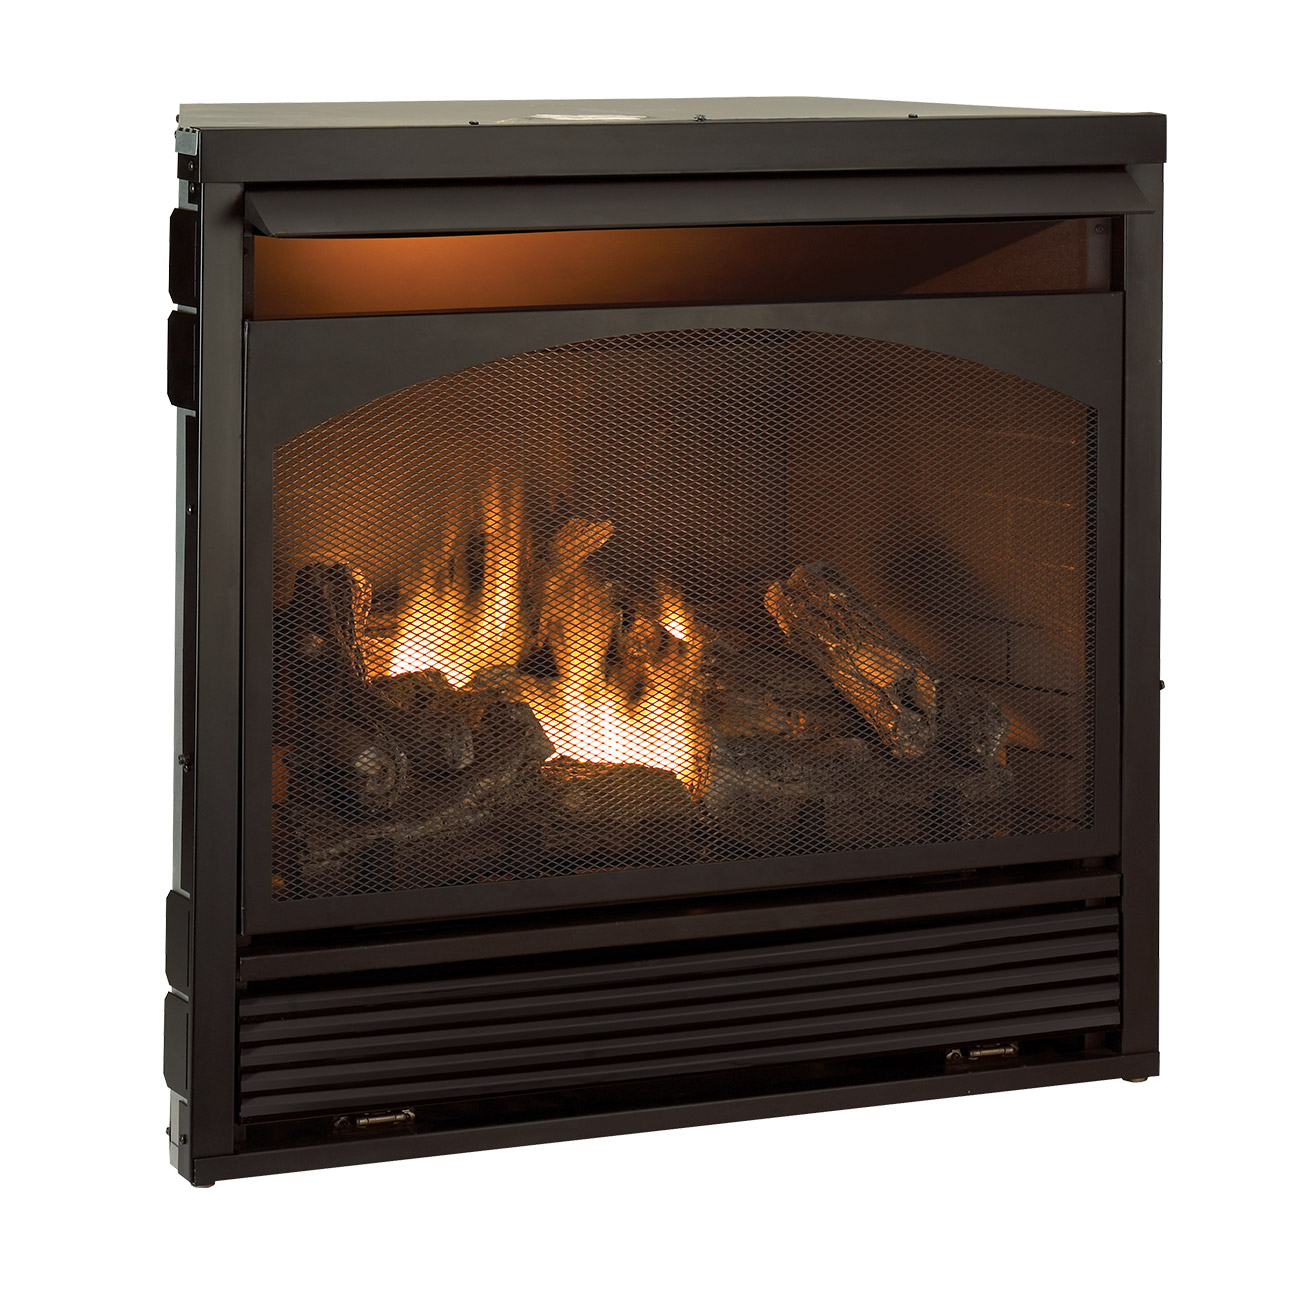 ProCom Heating Fireplace Insert FBD32RT-A